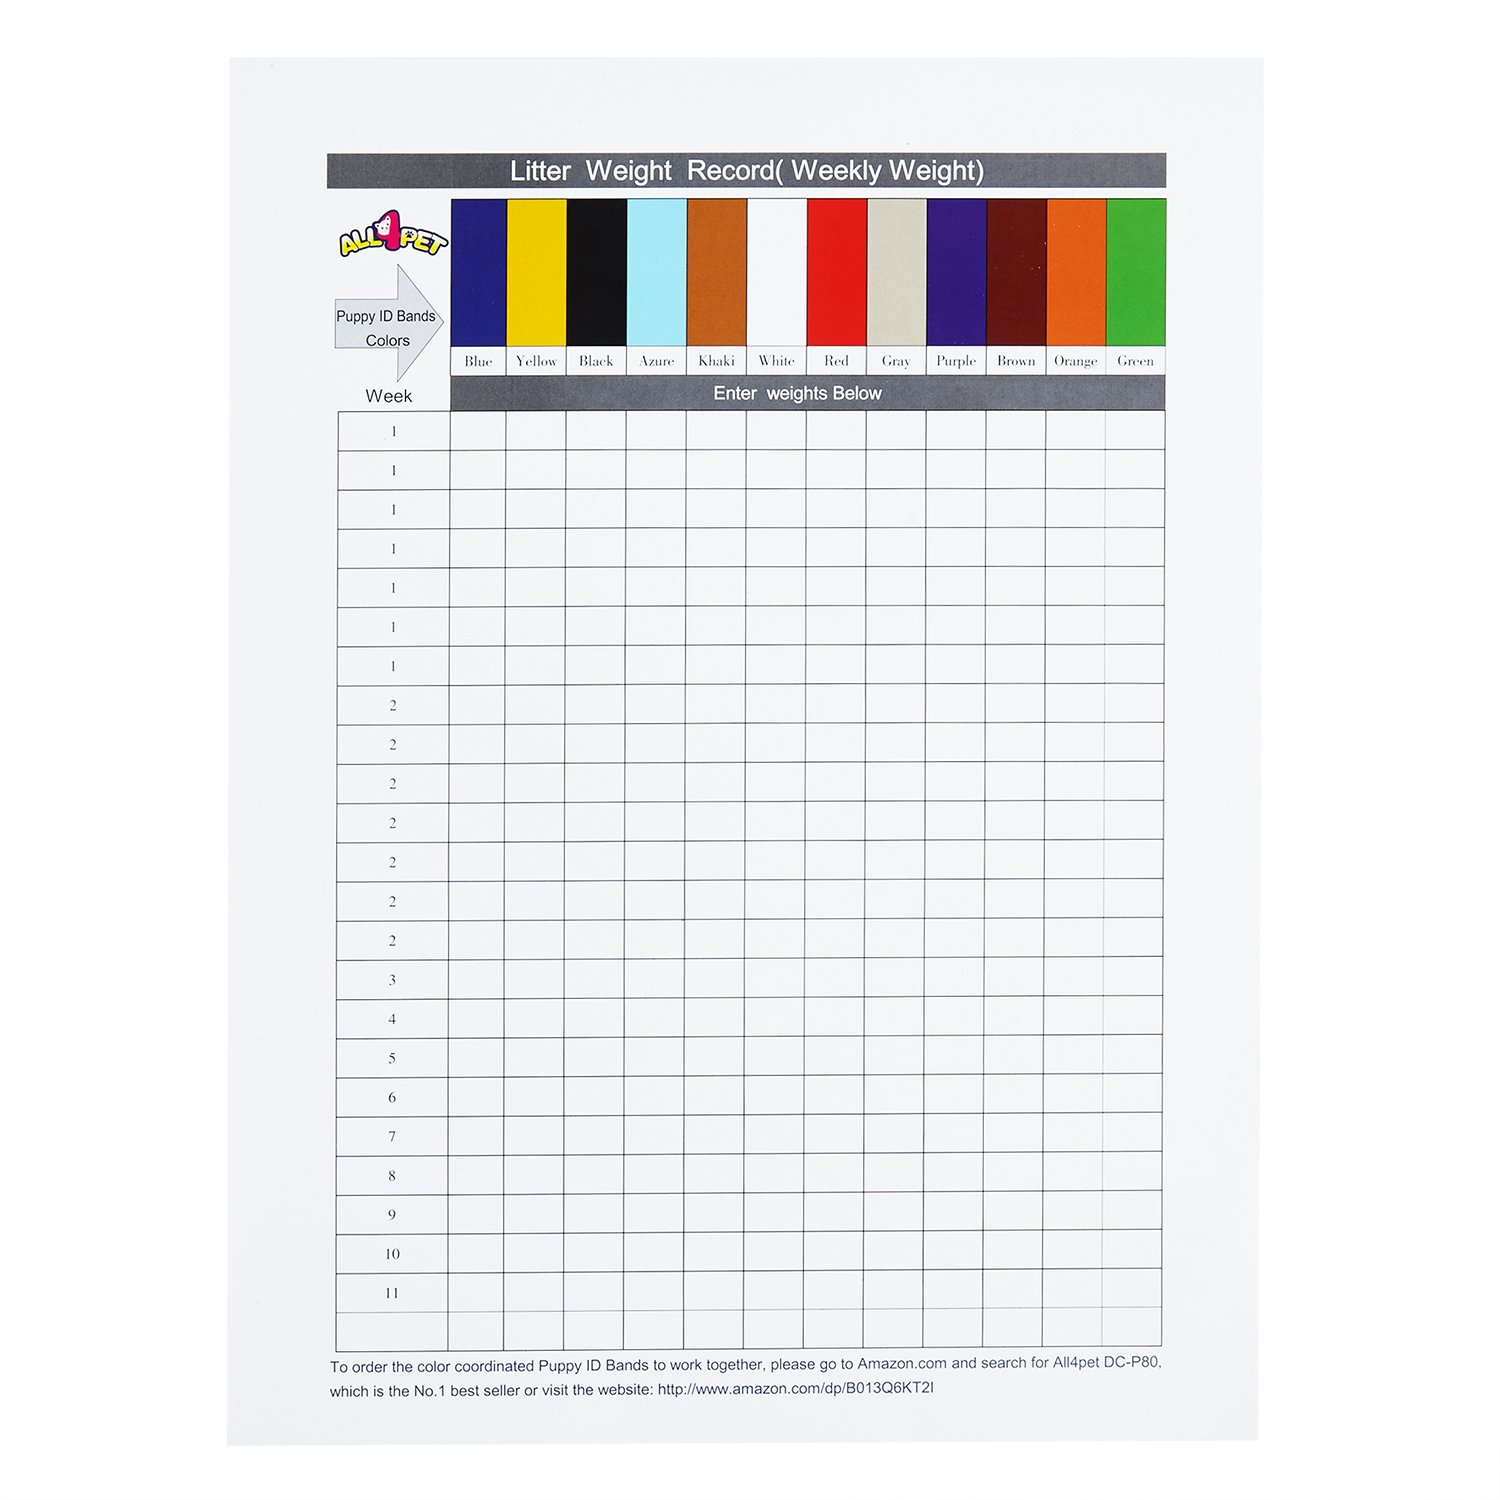 Amazon all4pet record keeping charts for breeders work amazon all4pet record keeping charts for breeders work together with puppy collars puppy id collars sports outdoors nvjuhfo Choice Image